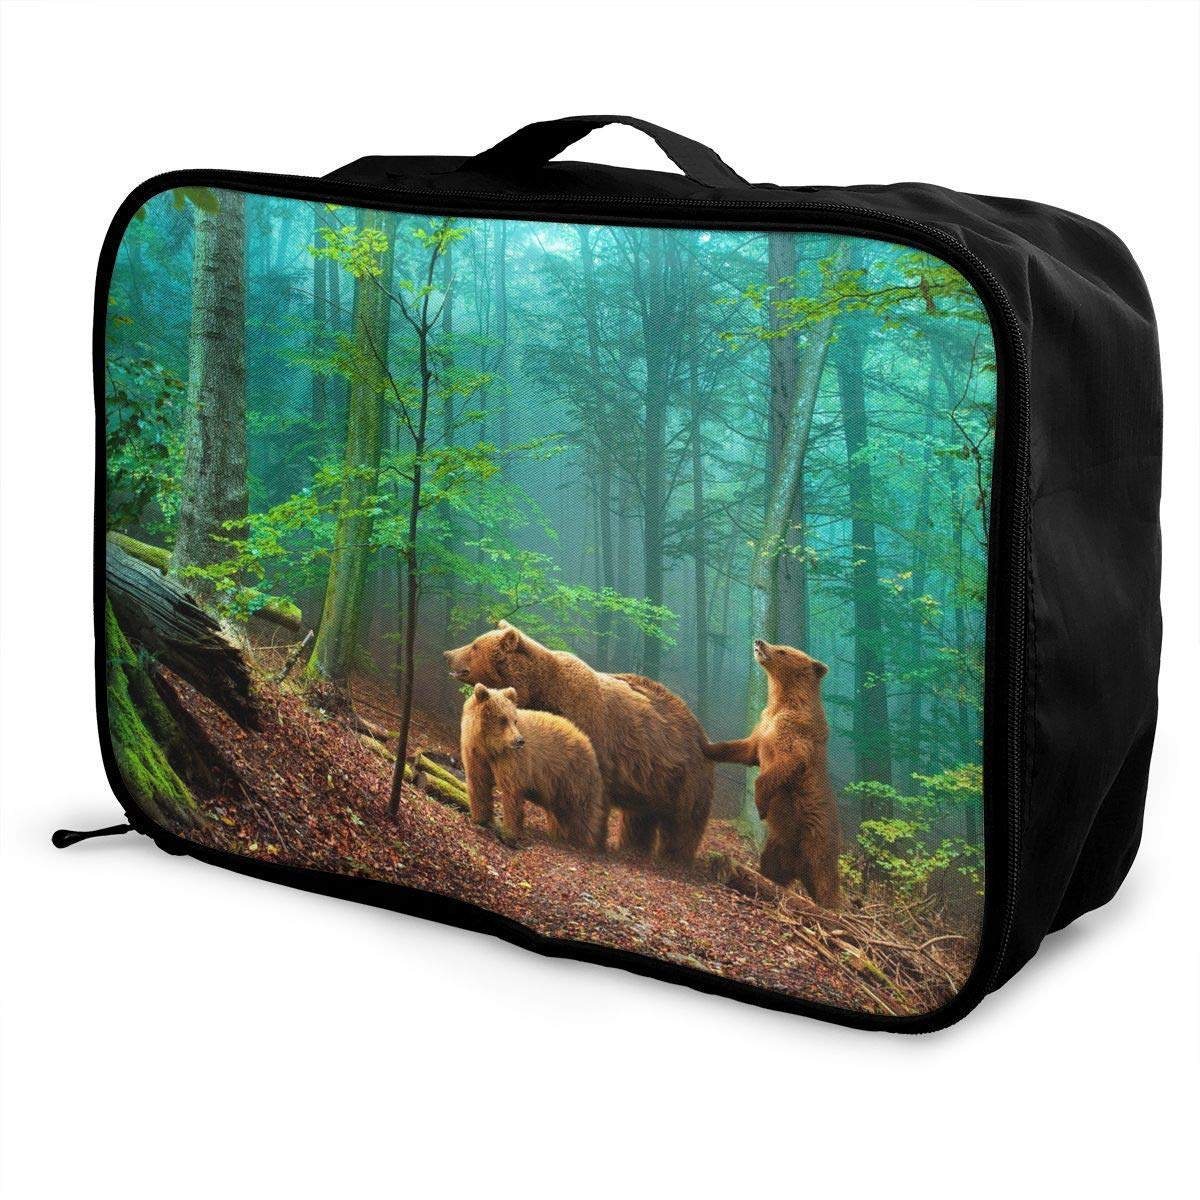 Lightweight Large Capacity Portable Duffel Bag for Men /& Women Forest Bears Travel Duffel Bag Backpack JTRVW Luggage Bags for Travel